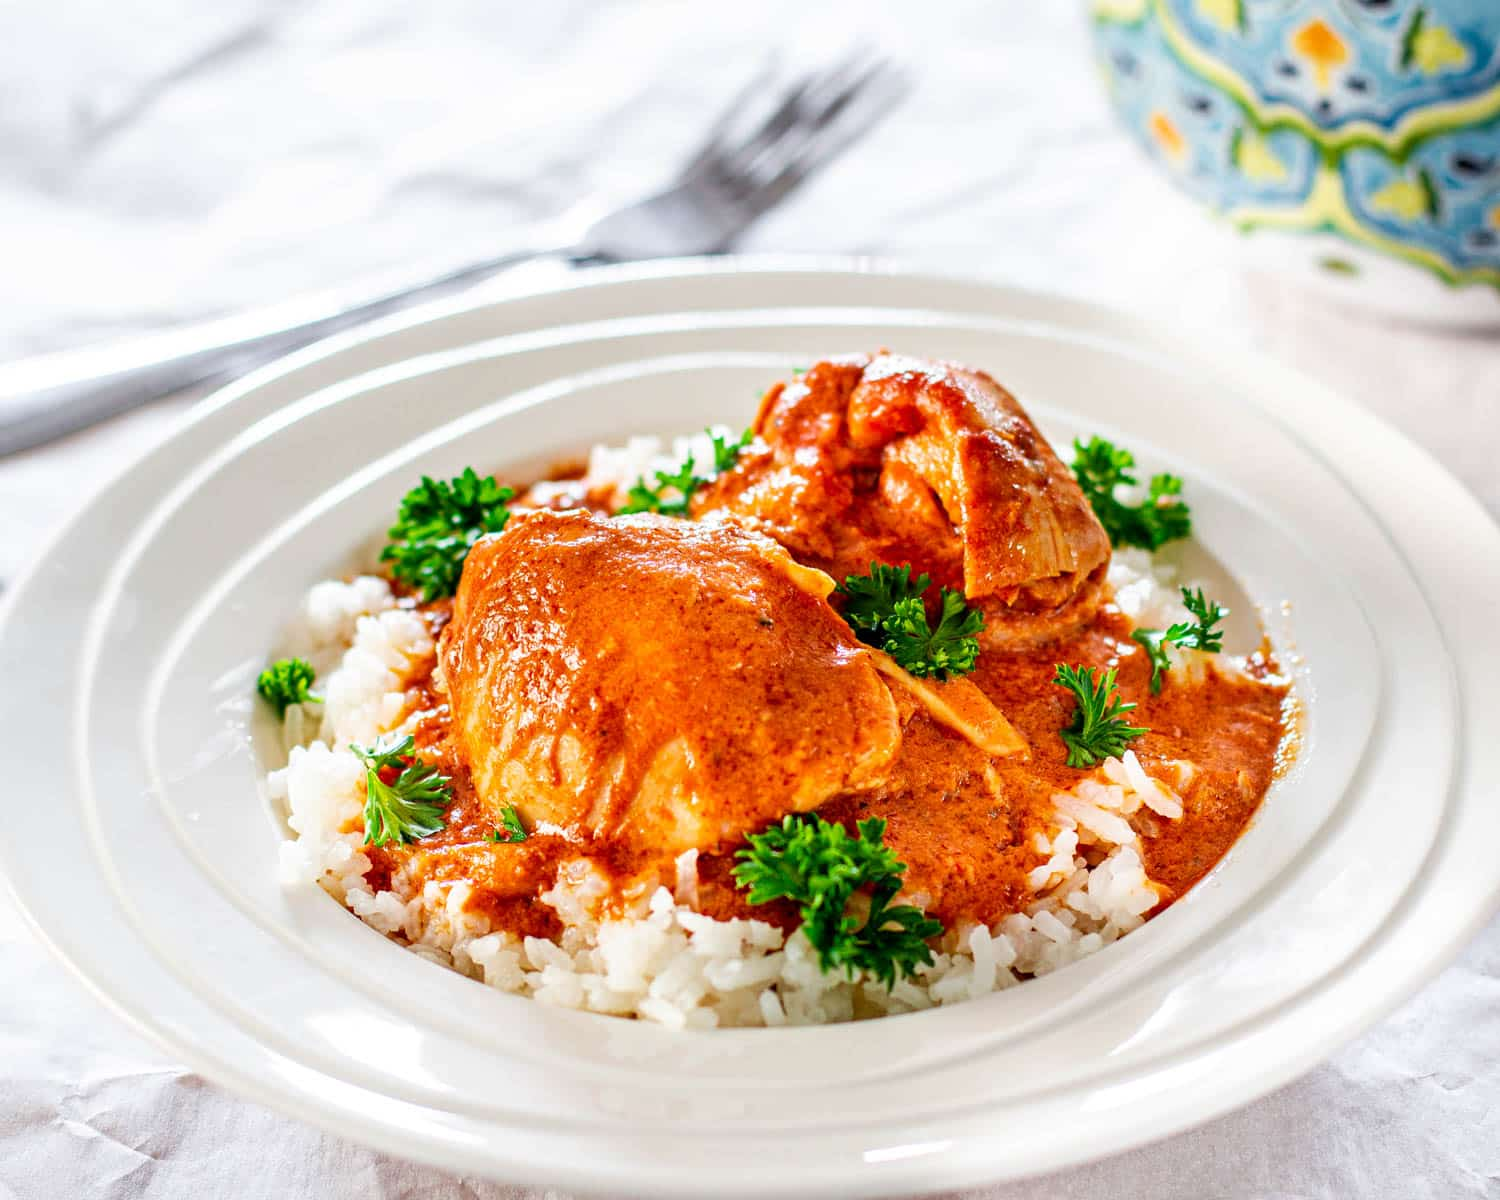 Crockpot Thai Chicken over a bed of rice in a white plate